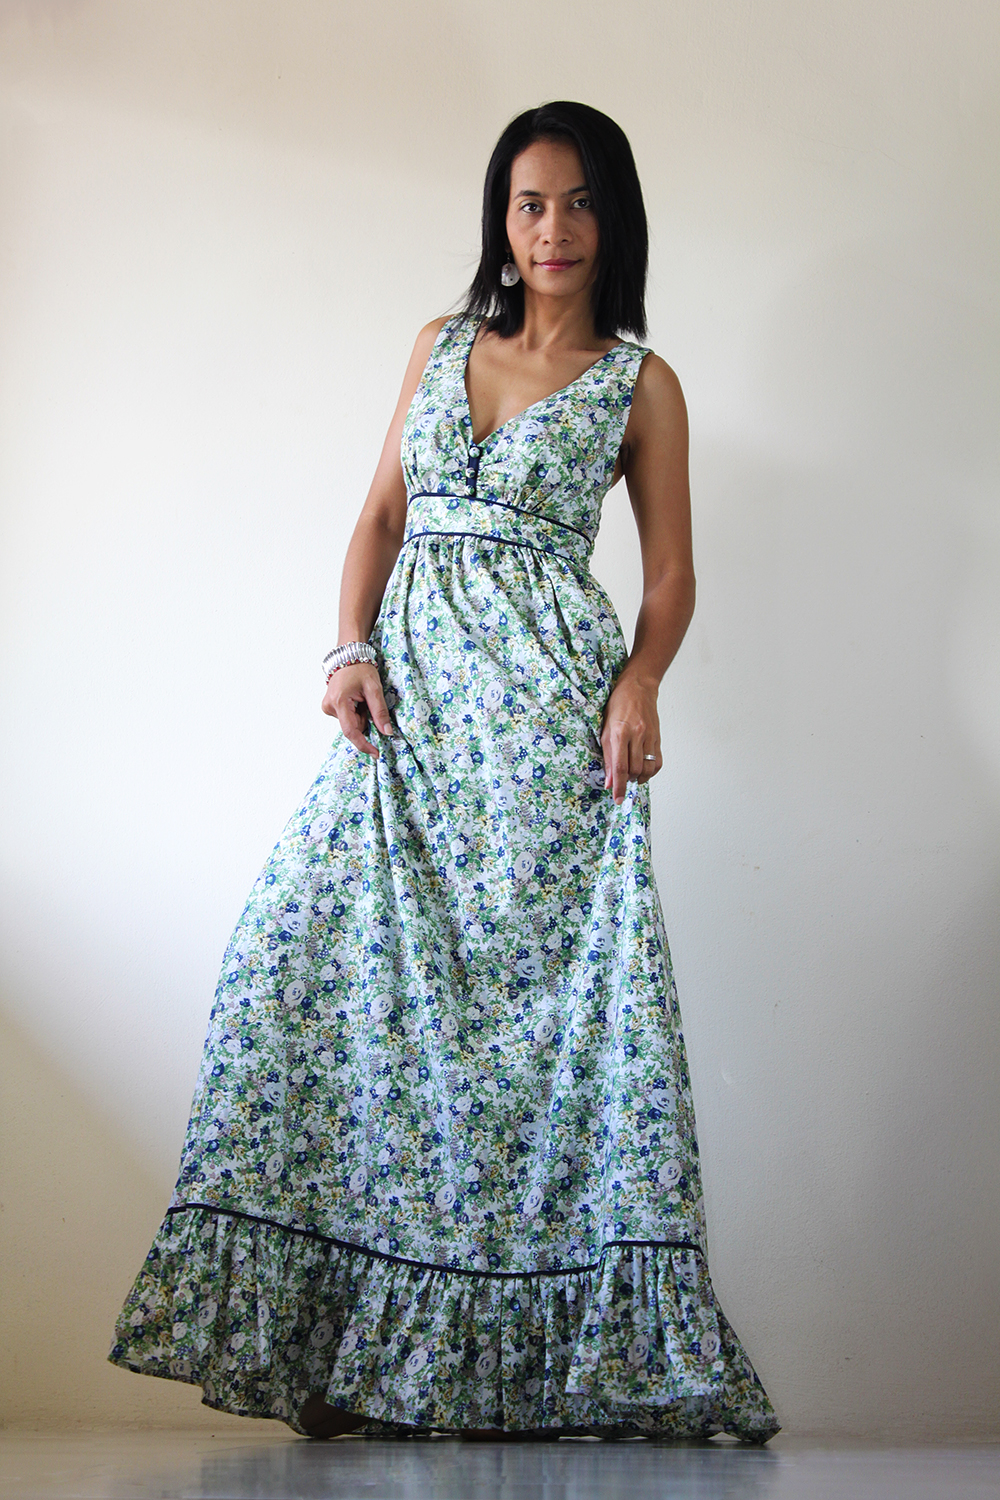 d577d61ac3f Floral Maxi Dress - Long Summer Dress   You Wear It Well Collection ...